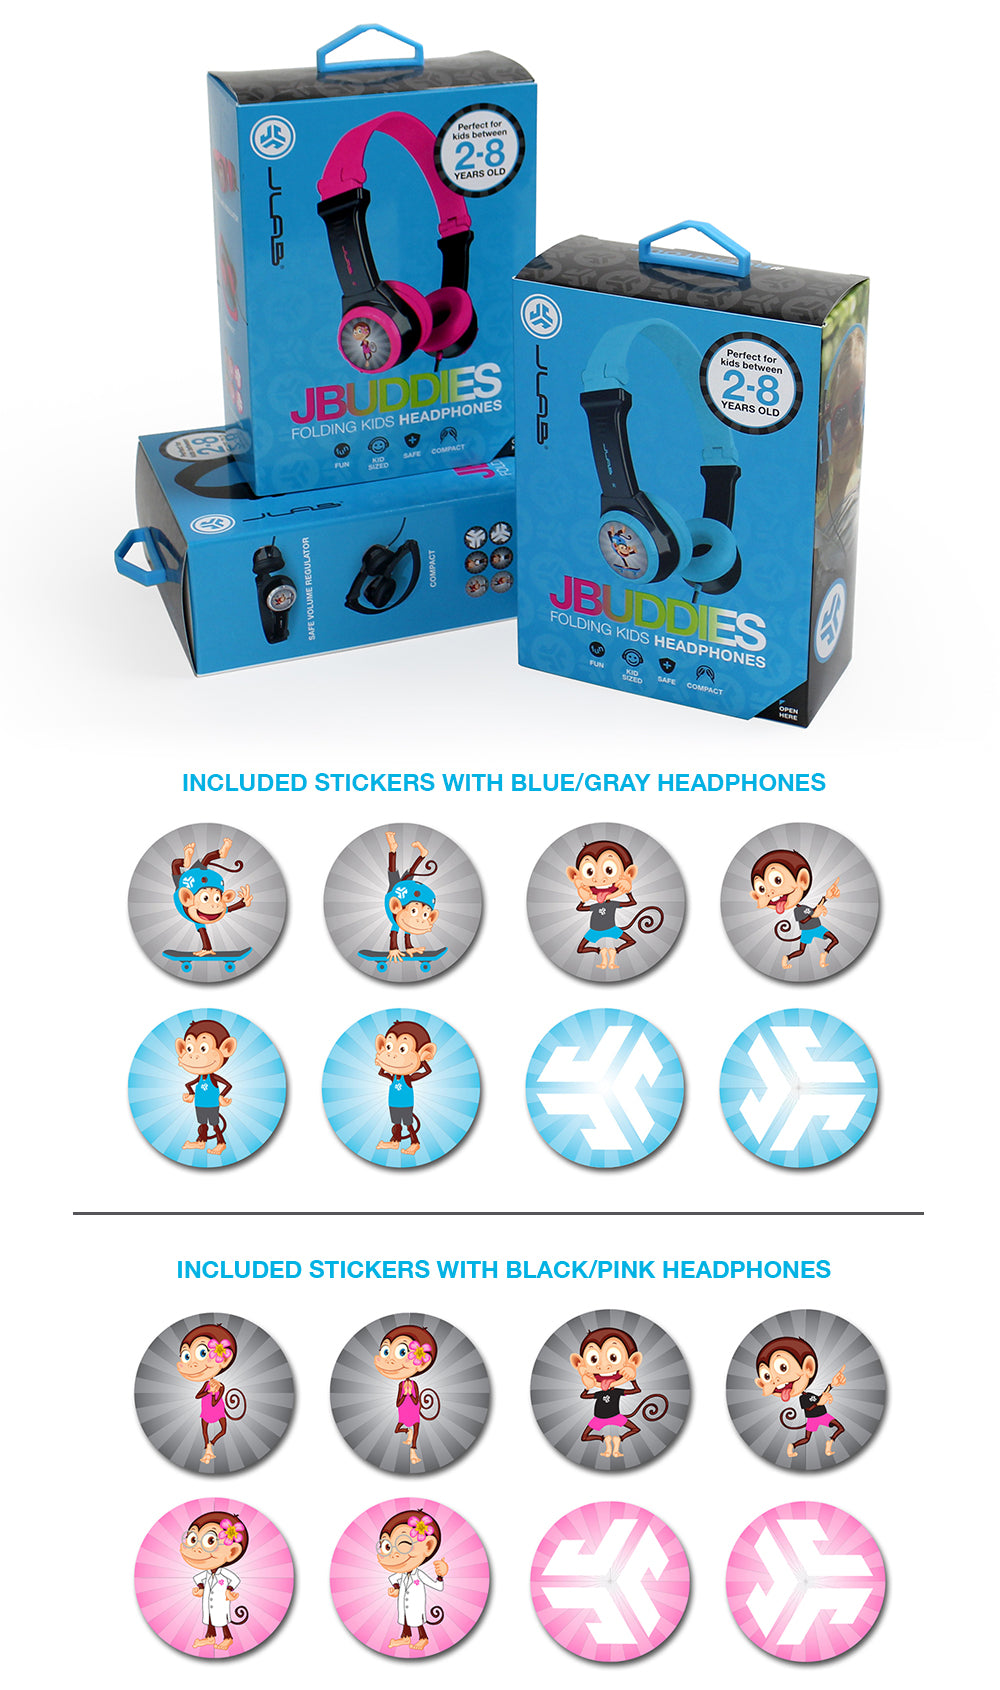 JBuddies Folding Kids Headphones Packaging and Included Stickers